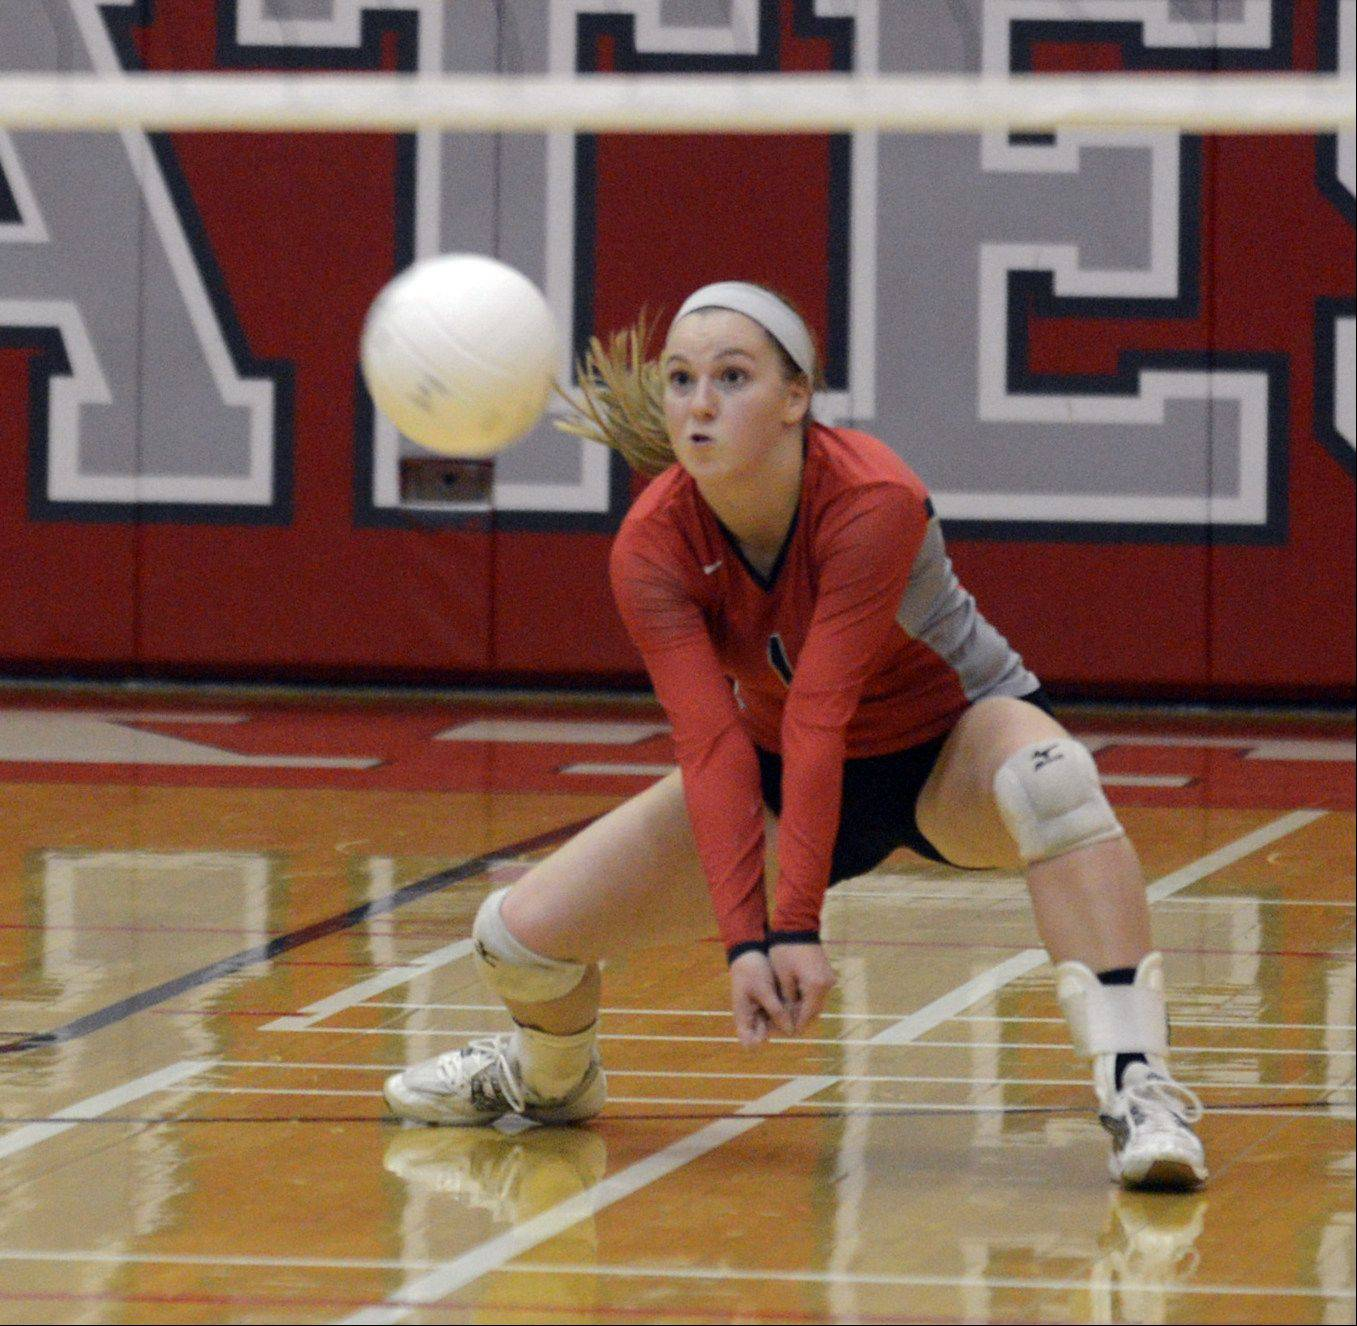 Palatine's Liz Keelty hits the ball during Monday's volleyball game against Stevenson in Palatine.